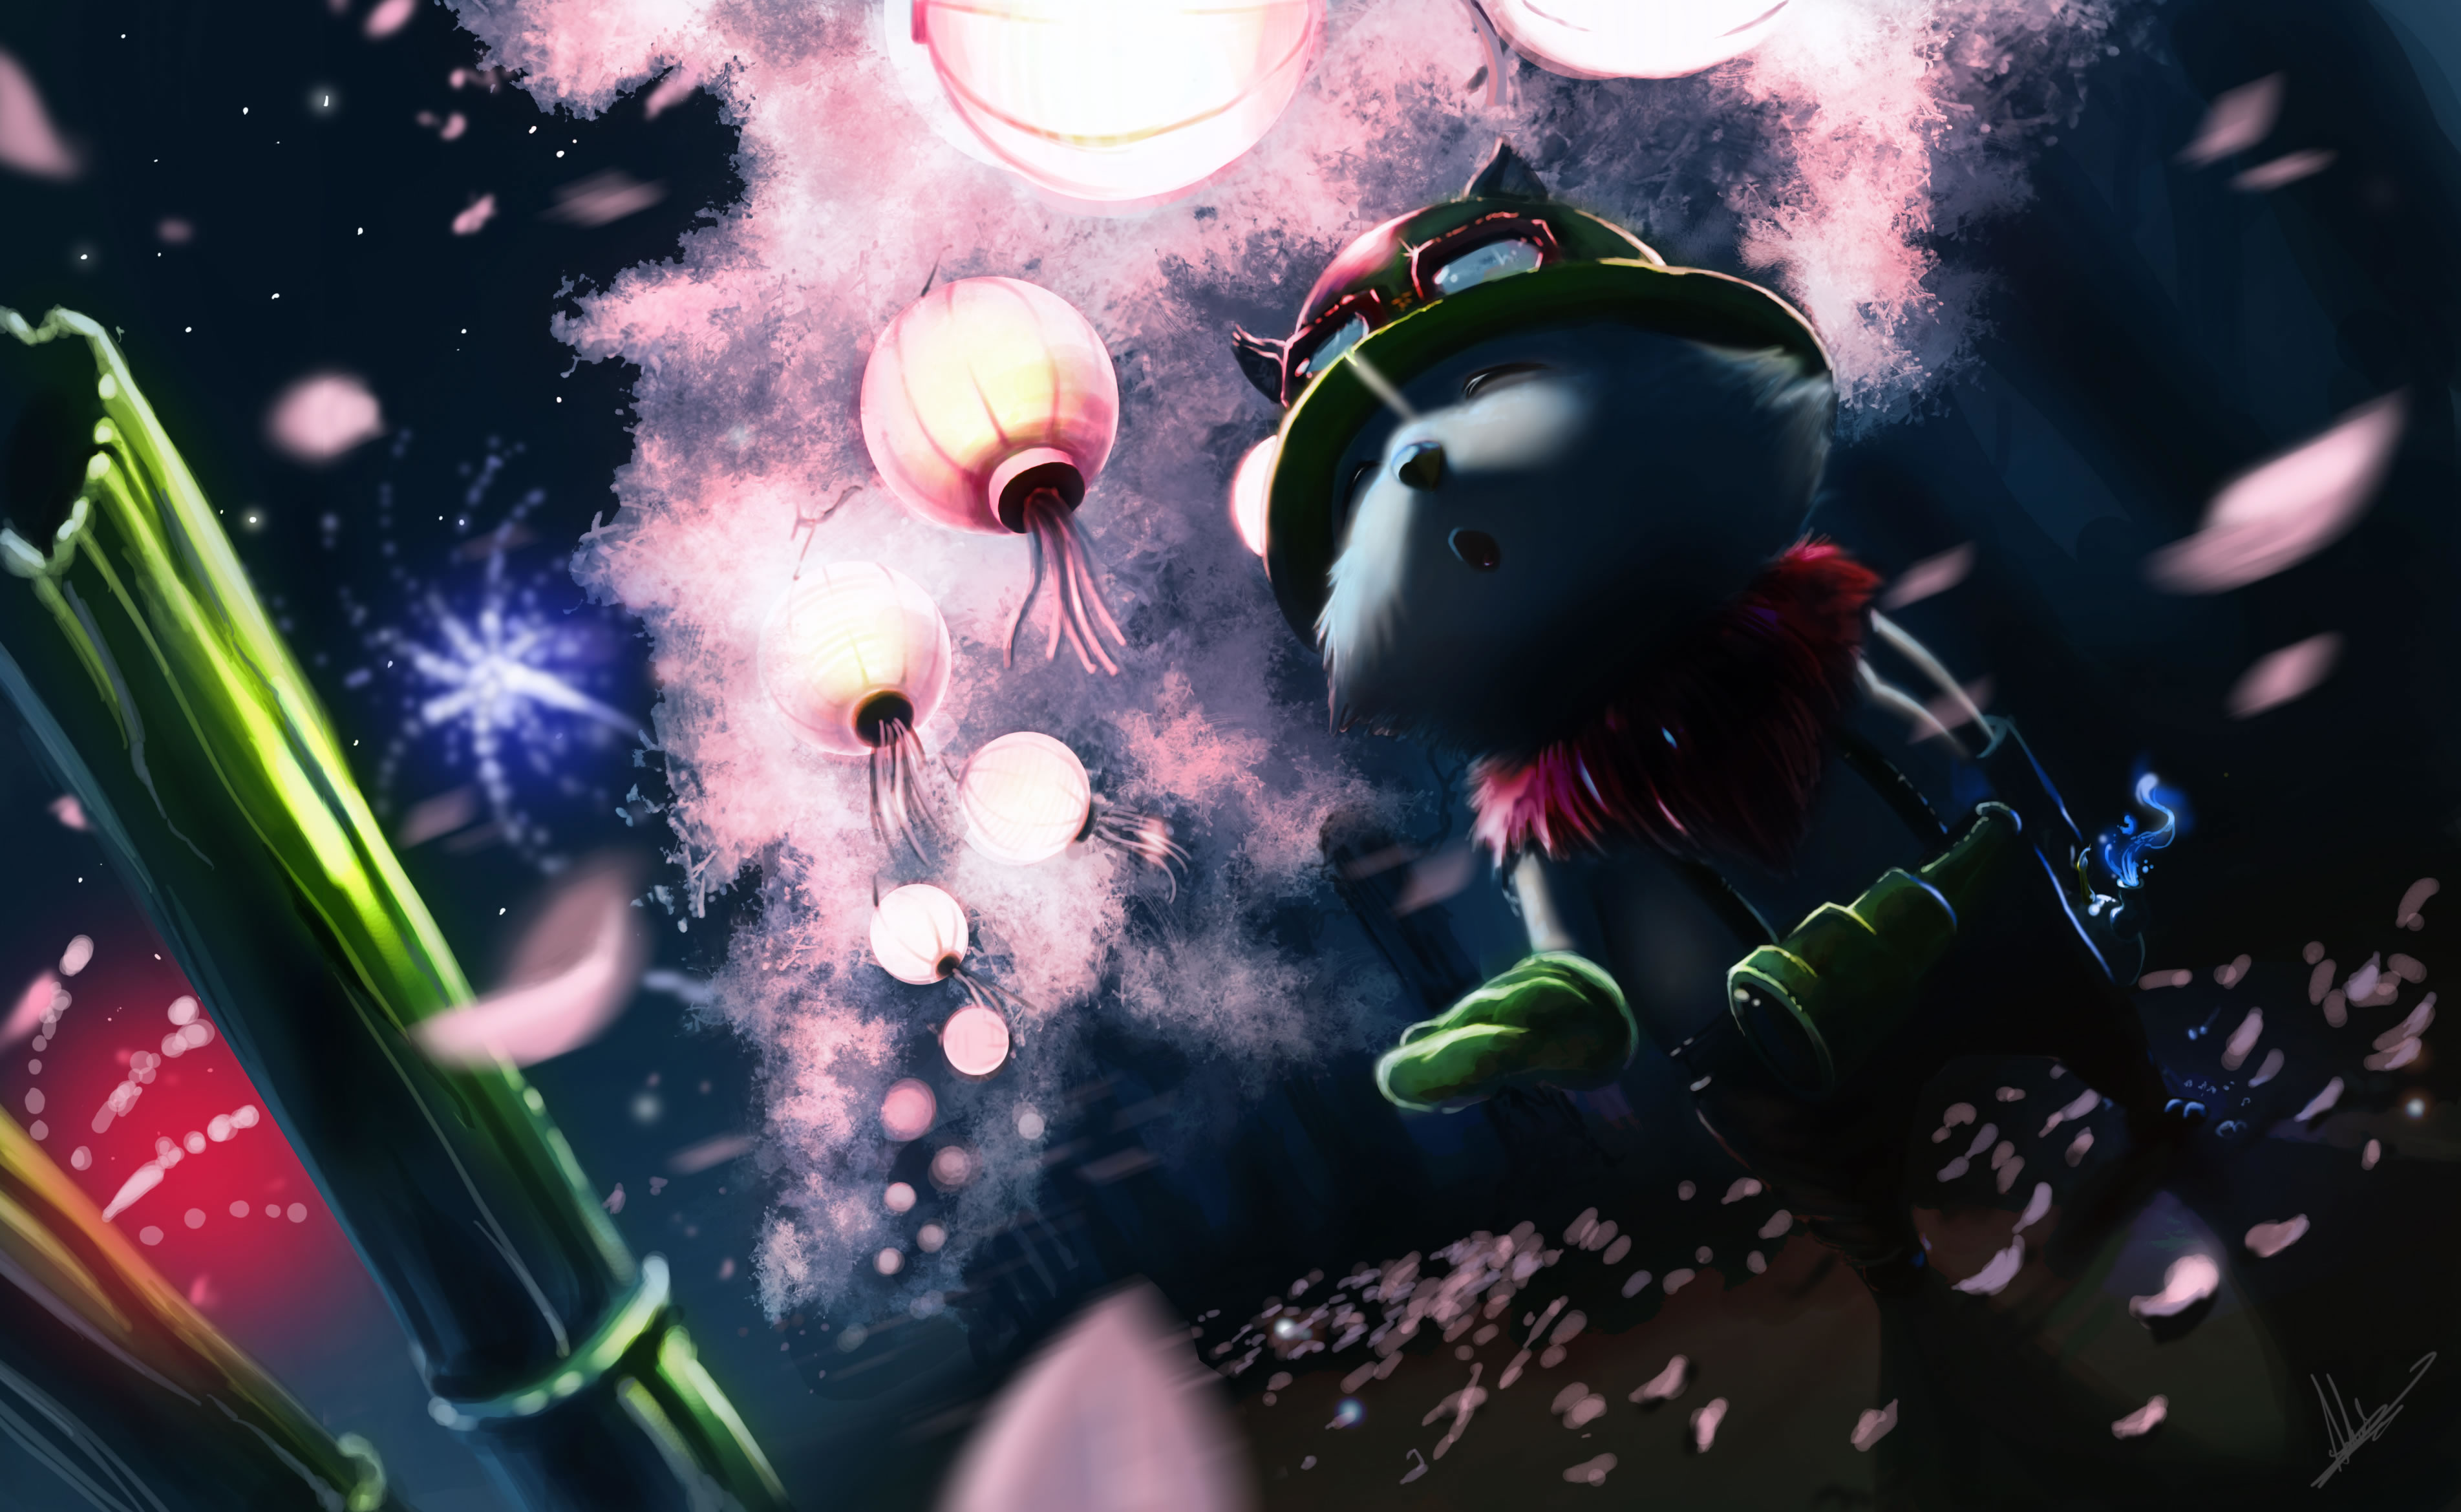 Lol Wallpapers Hd 1980x1080 Art Of Revelry Contest Teemo League Of Legends Wallpapers